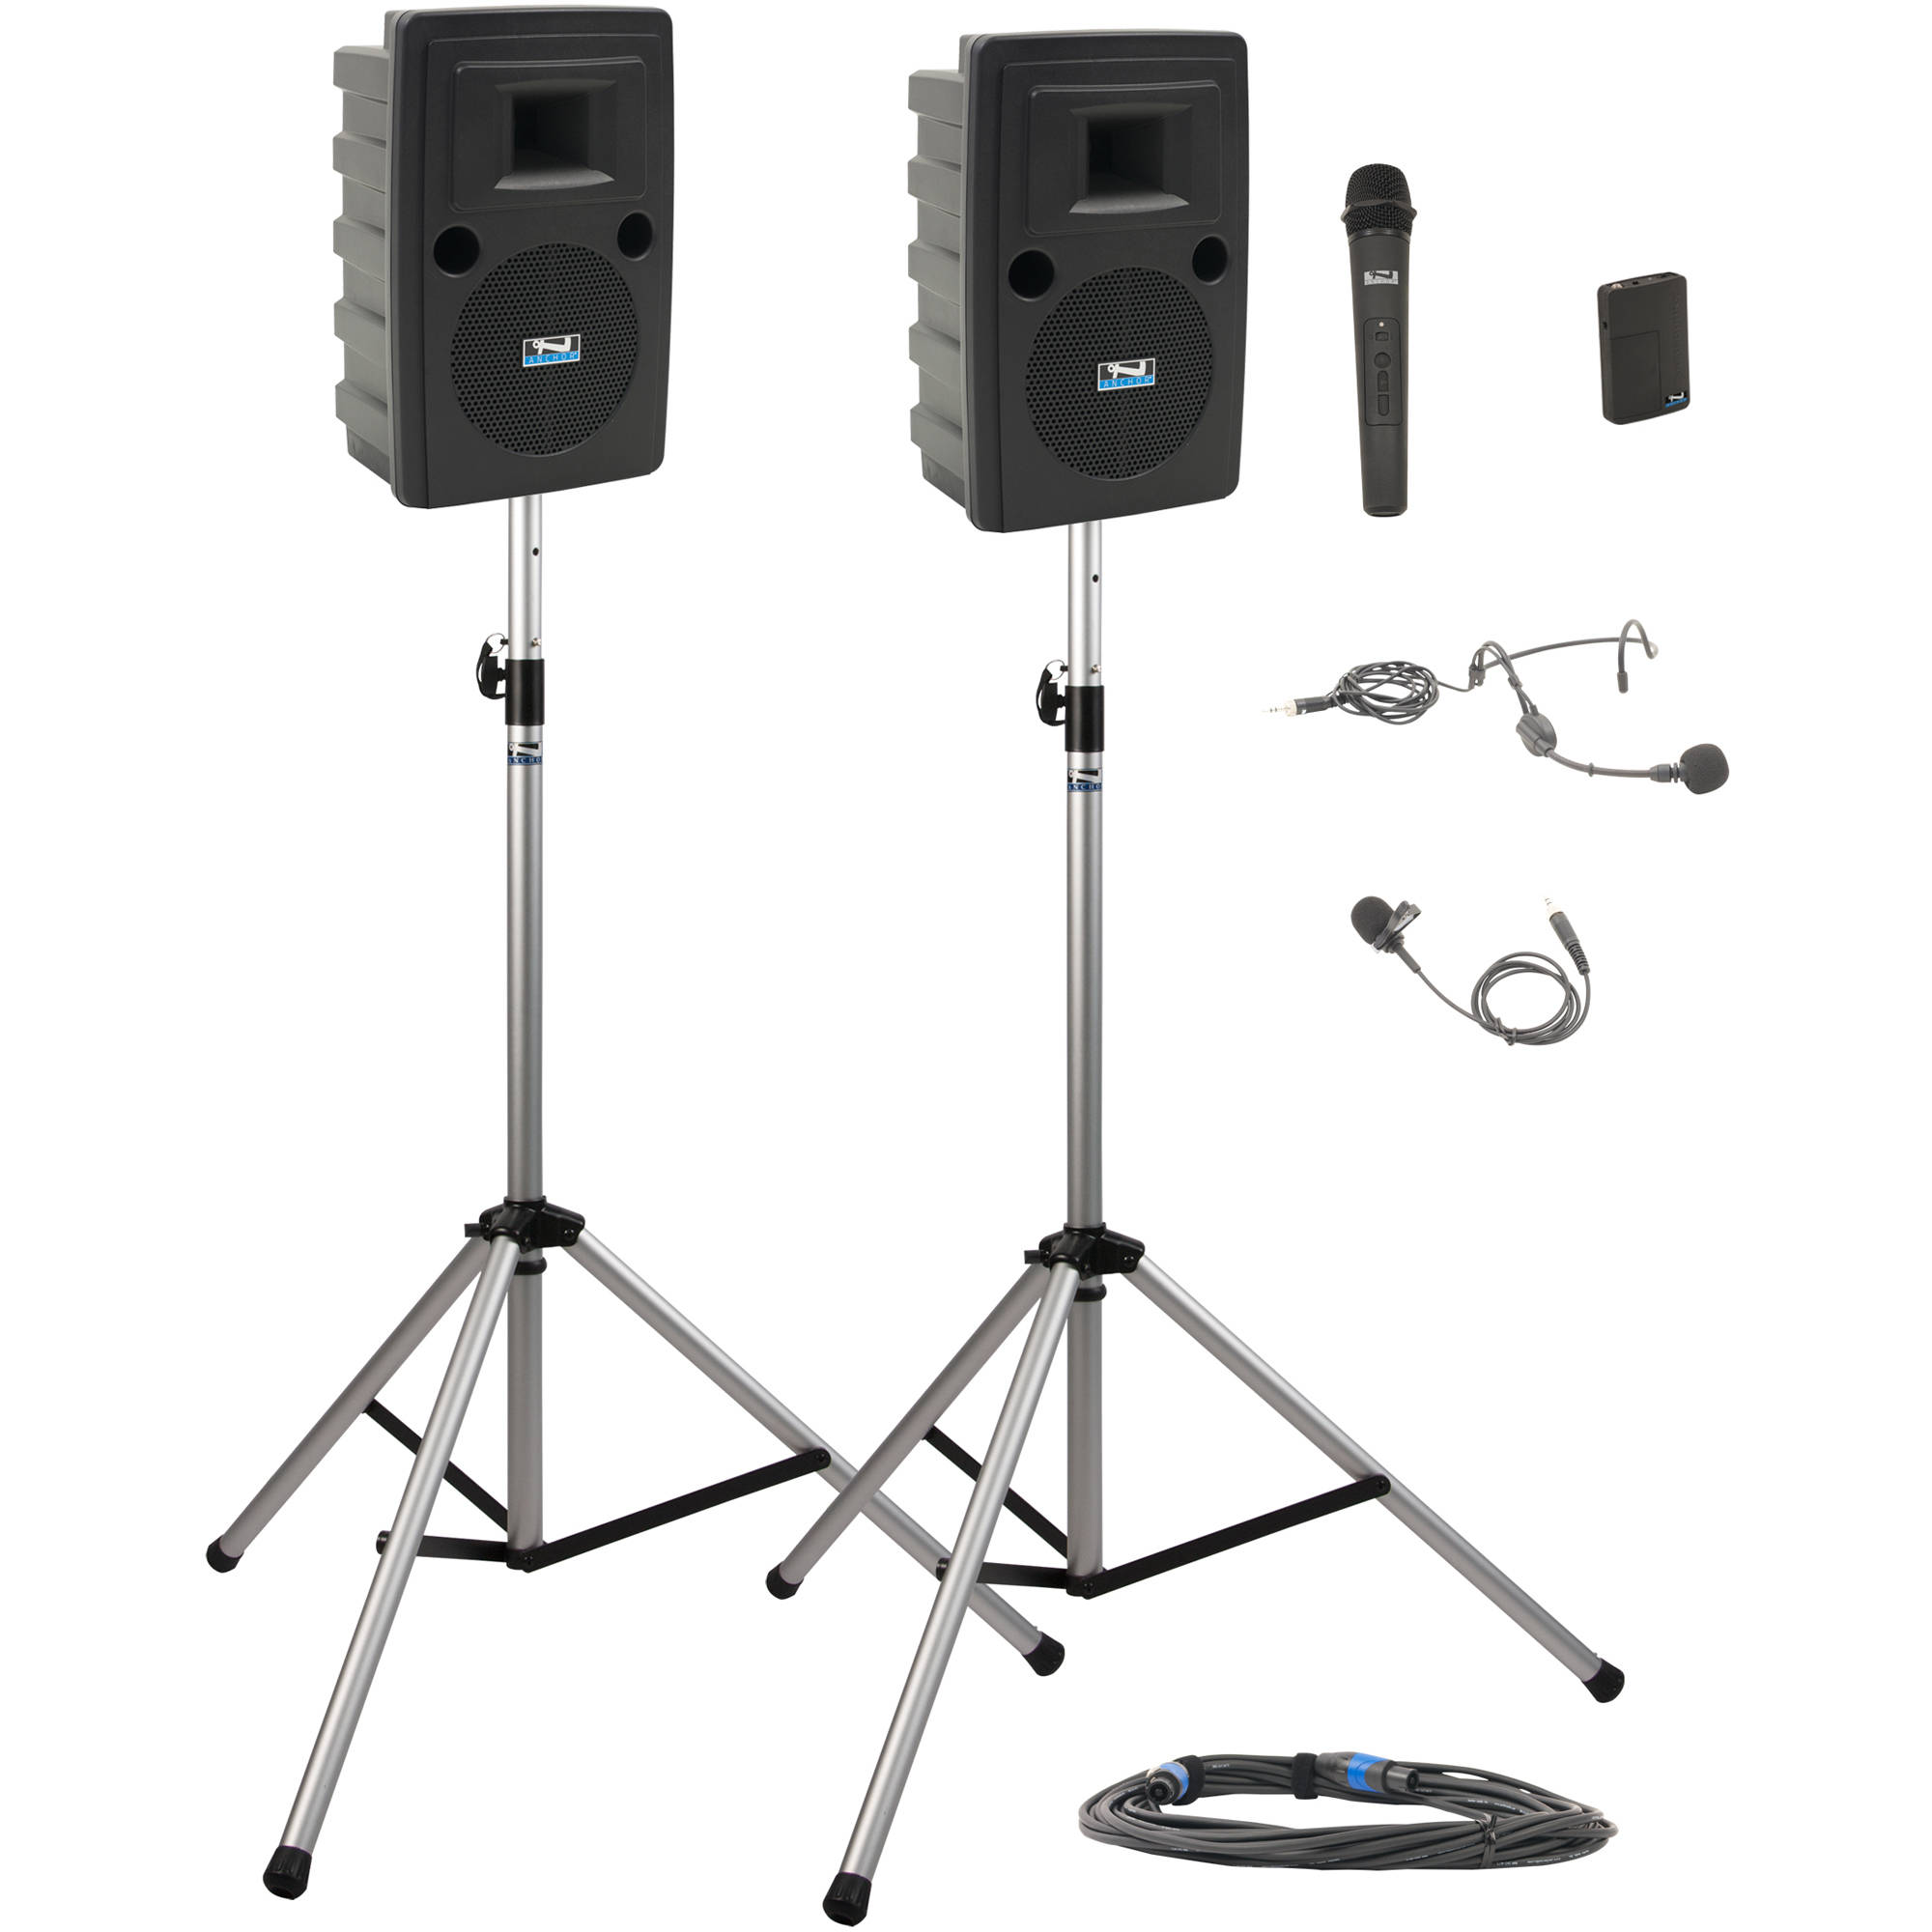 Anchor Audio LIB-DP2-HB Liberty Deluxe Package 2 Portable Bluetooth PA  System with Bodypack   Handheld Wireless Microphone Transmitters, Unpowered  Companion ... 16630745e9